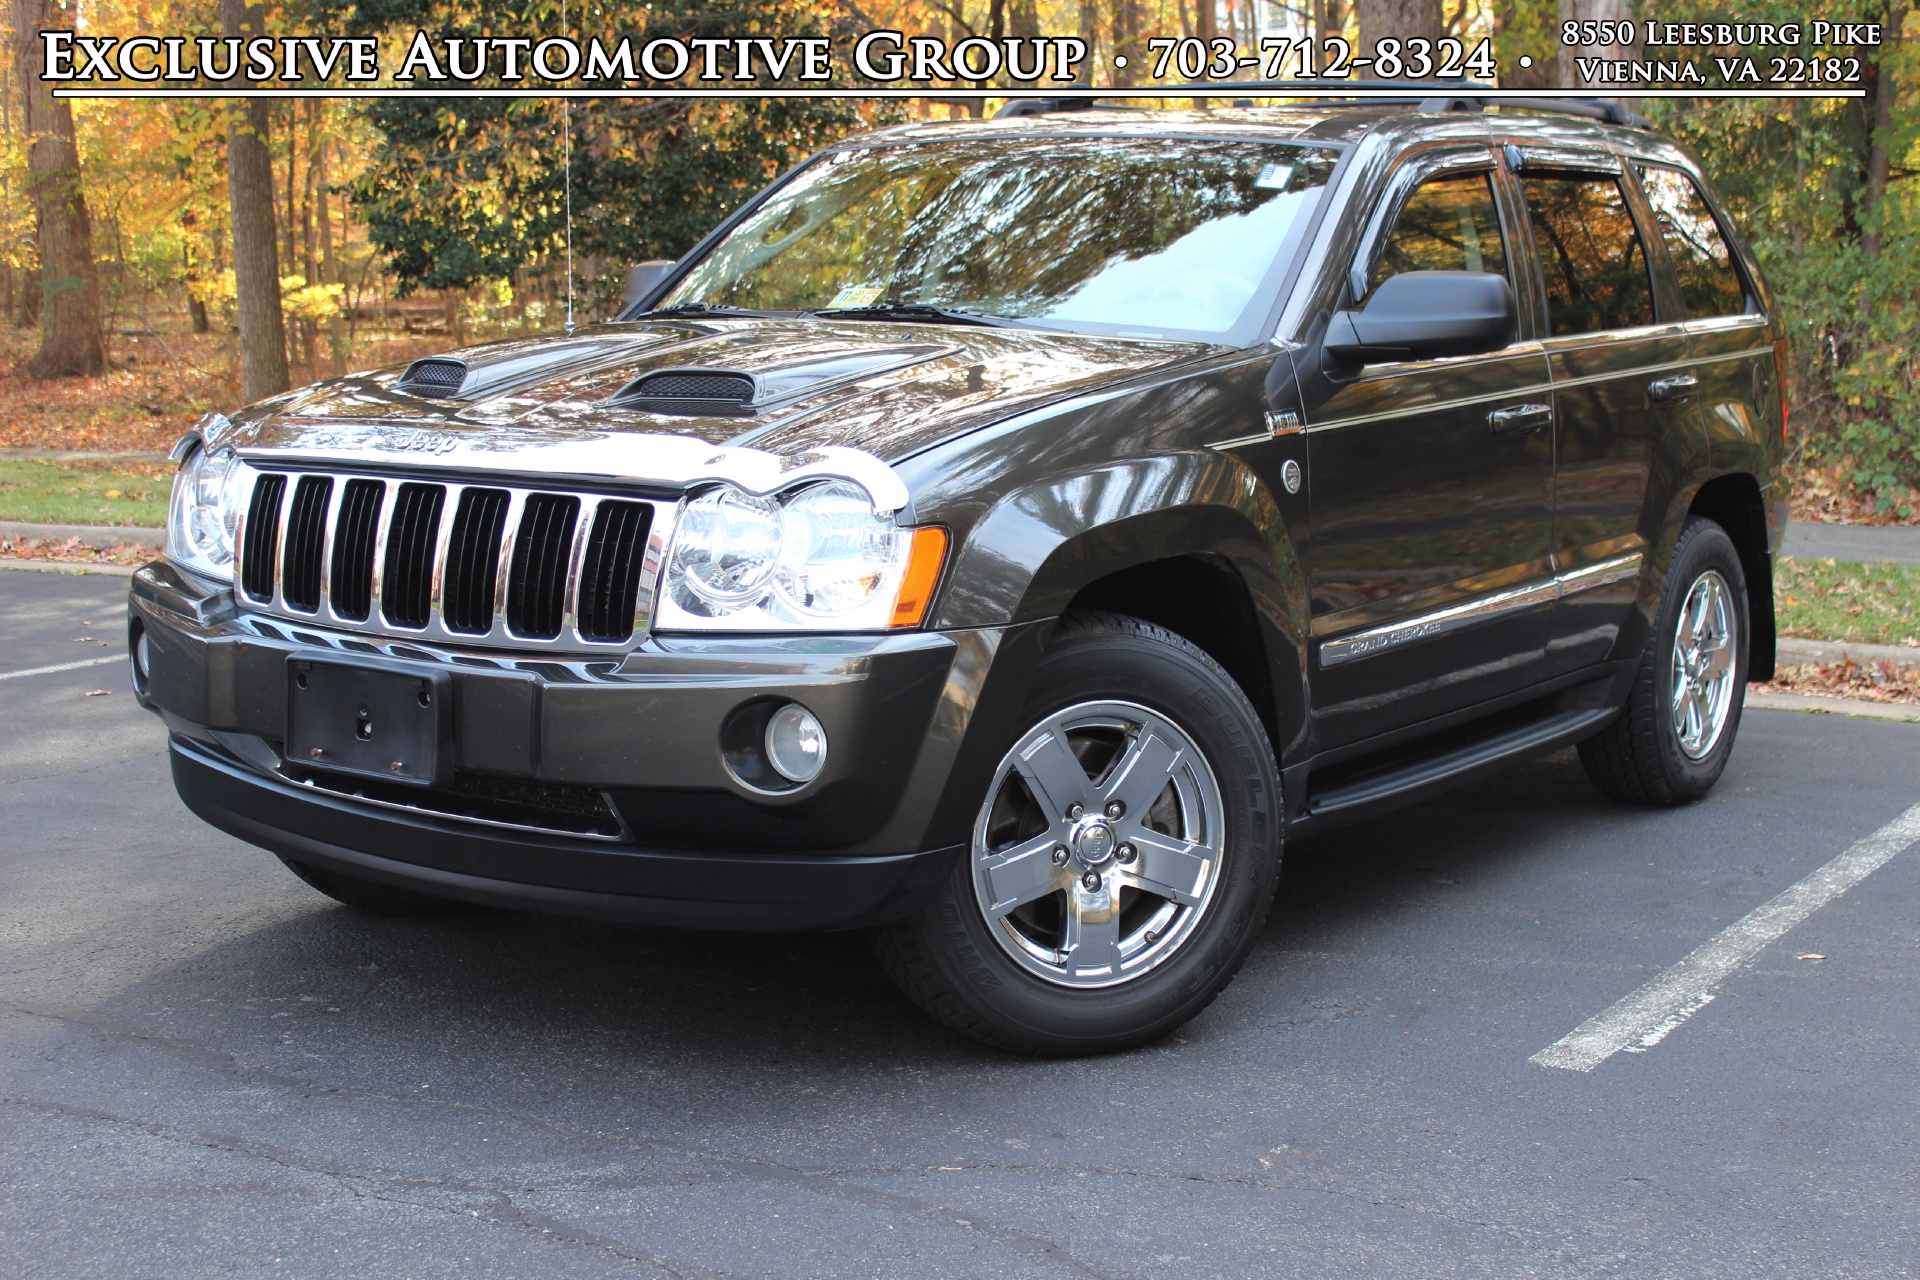 2005 jeep grand cherokee limited stock p511756 for sale near vienna va va jeep dealer for. Black Bedroom Furniture Sets. Home Design Ideas